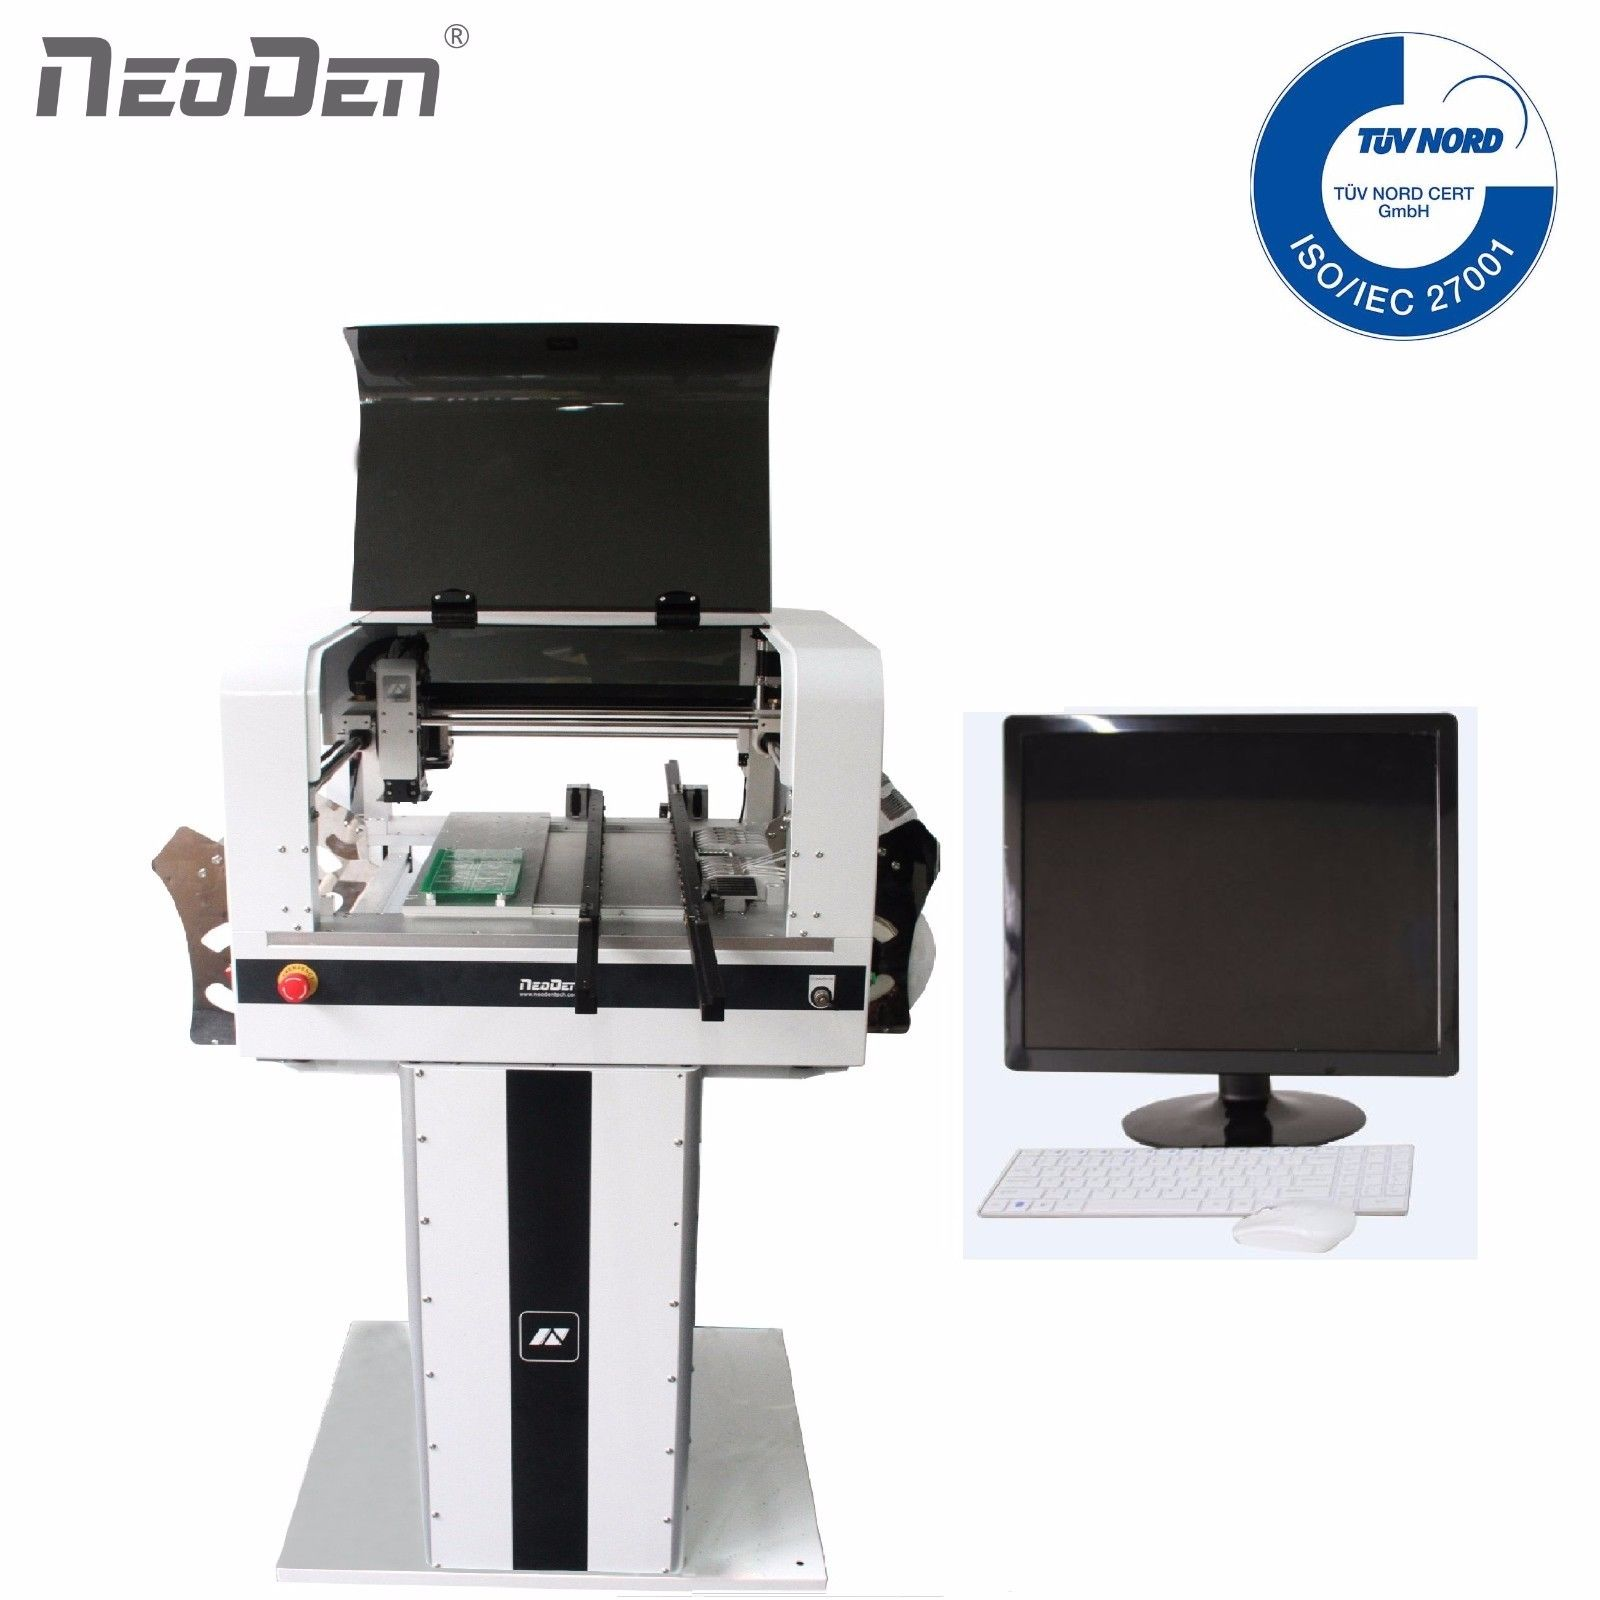 LED SMT pick place machine NeoDen NeoDen4 met camera smd feeder auto transportband 5000CPH led lamp verlichting BGA